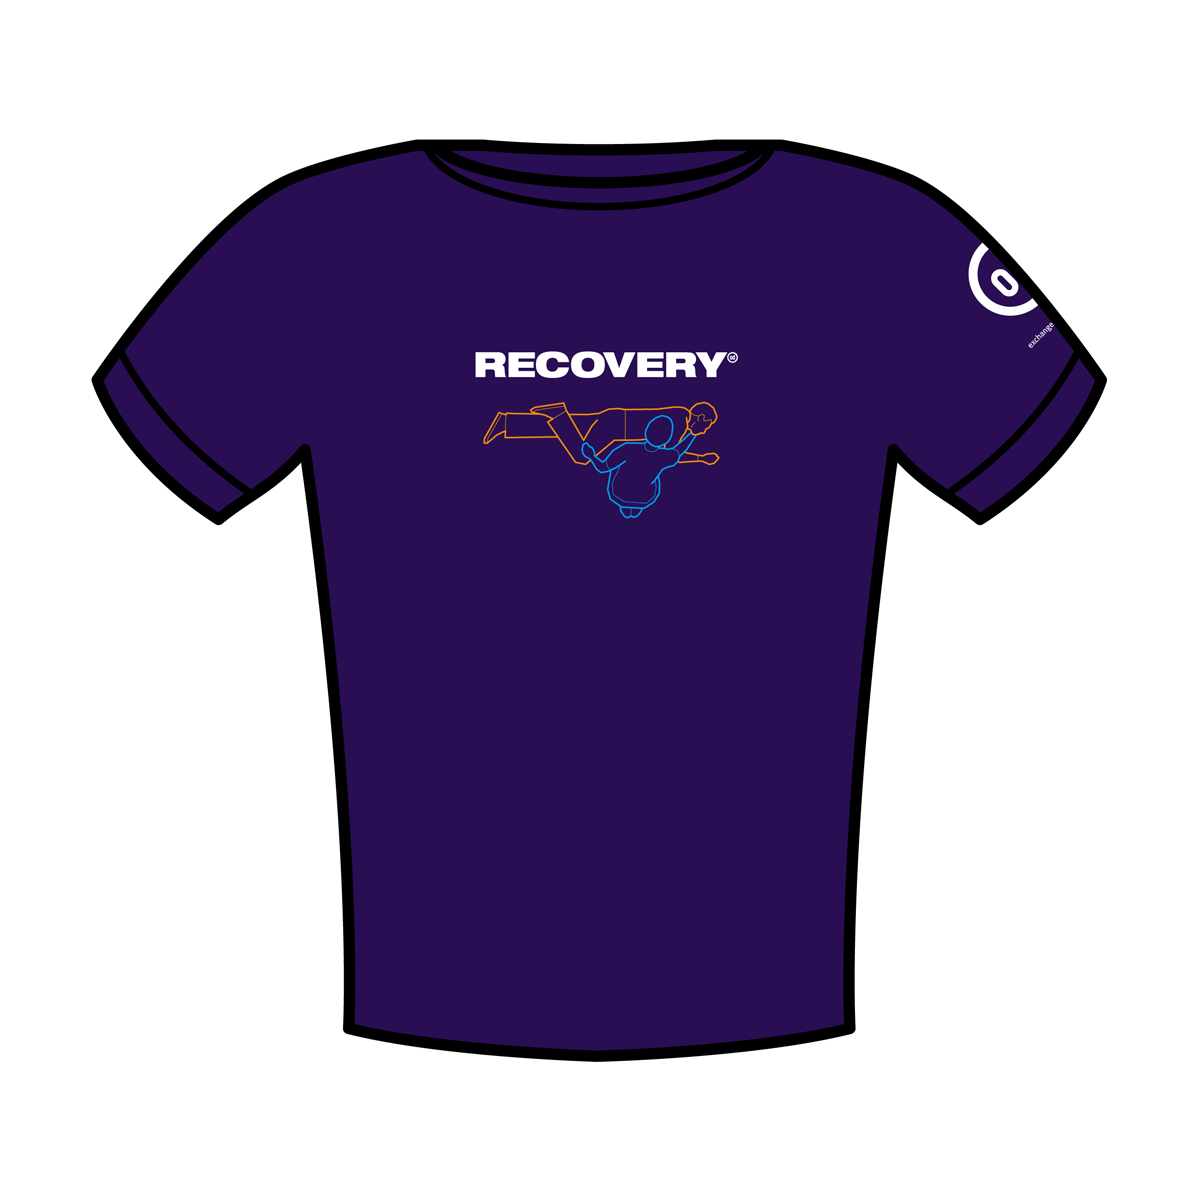 Recovery T-shirt (large)